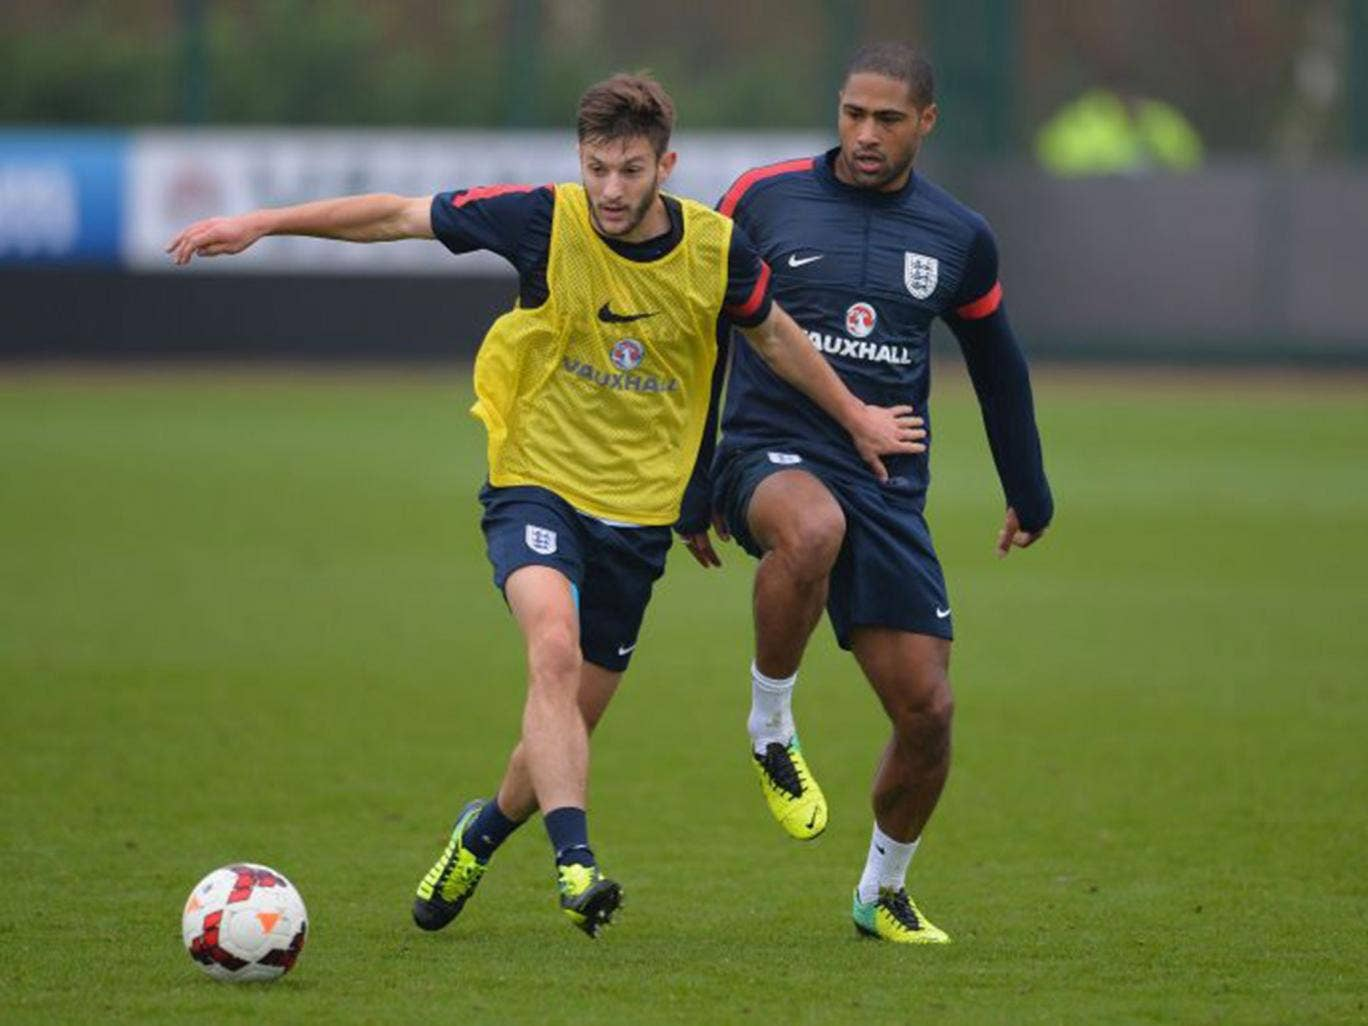 Adam Lallana, who Liverpool want to buy from Southampton, will have to put England first, says Roy Hodgson